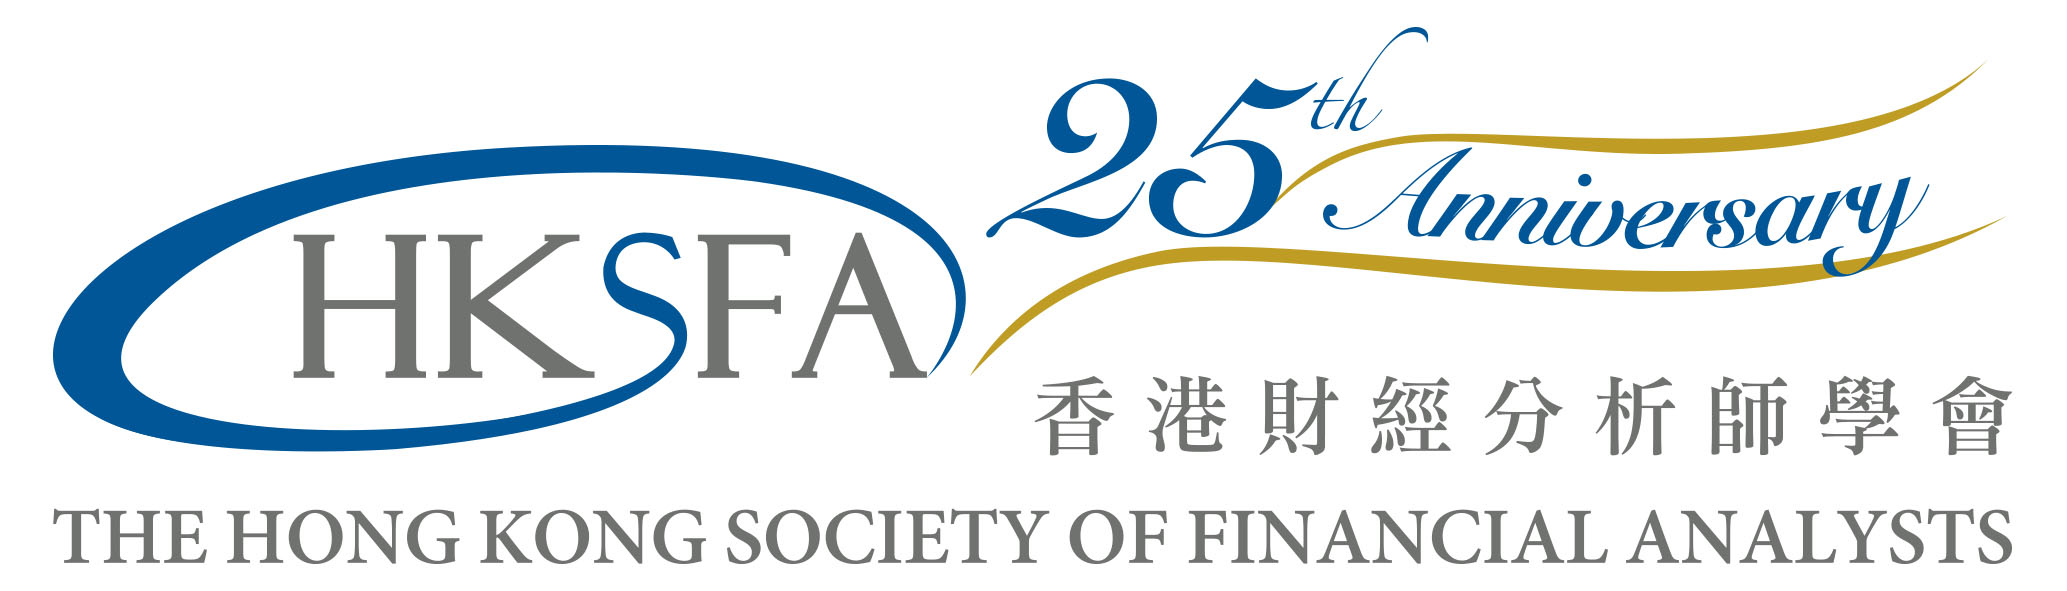 HKSFA_25th_Logo_Final_RGB